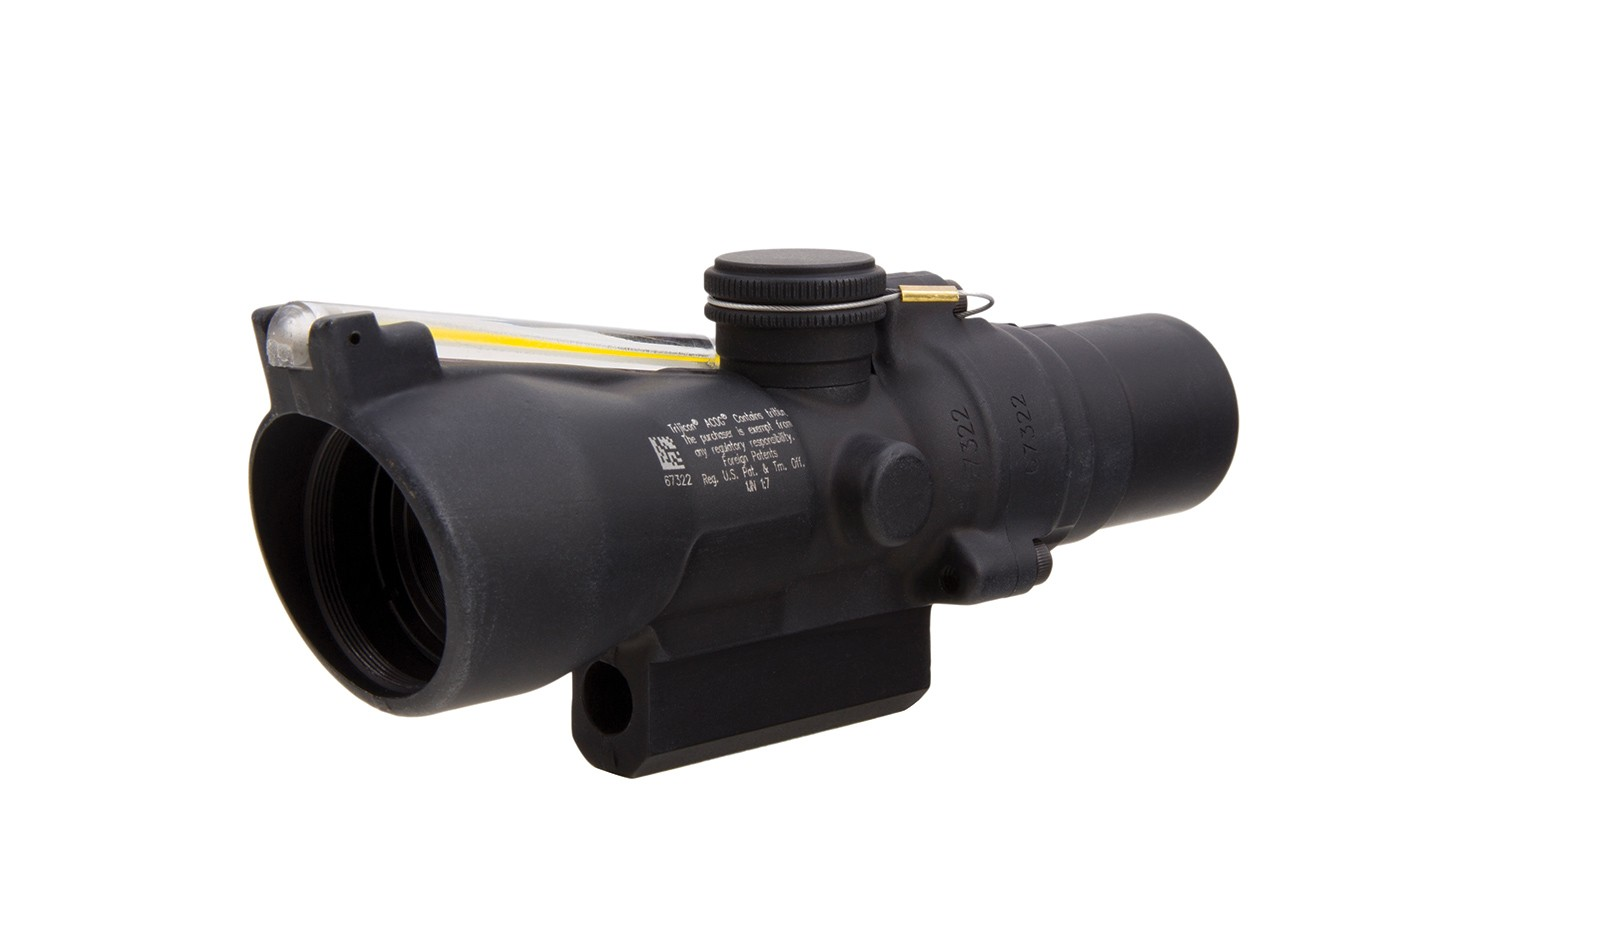 Trijicon ACOG® 2x20 BAC Riflescope